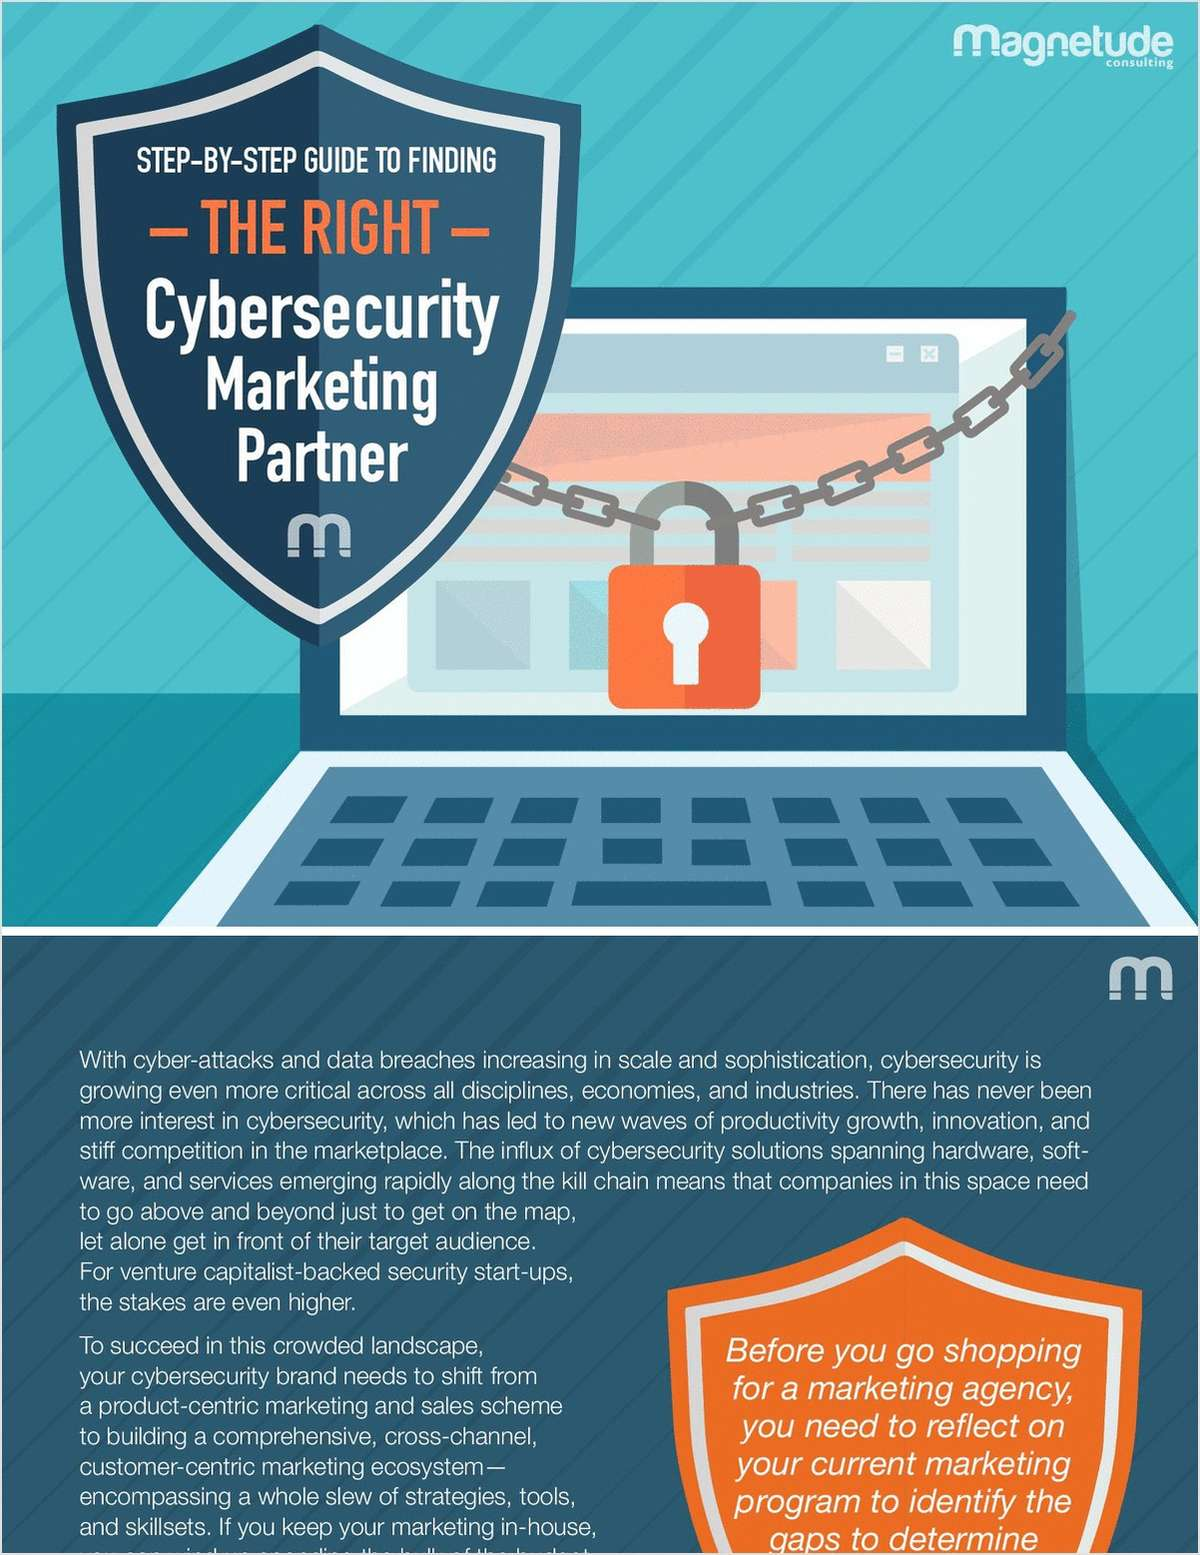 A Step-by-Step Guide to Finding the Right Cybersecurity Marketing Partner